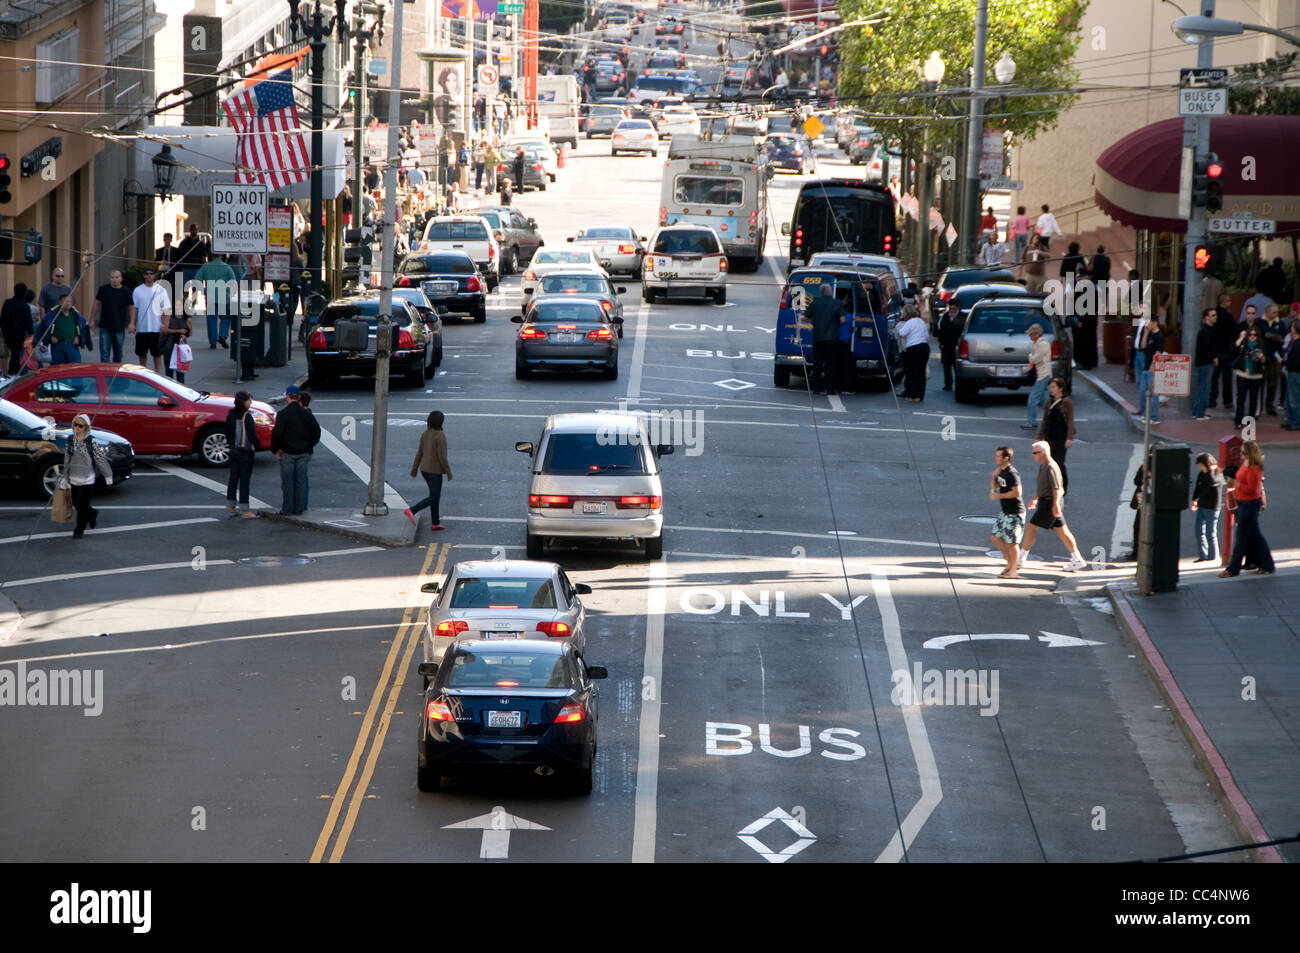 Busy street in downtown San Francisco - Stock Image